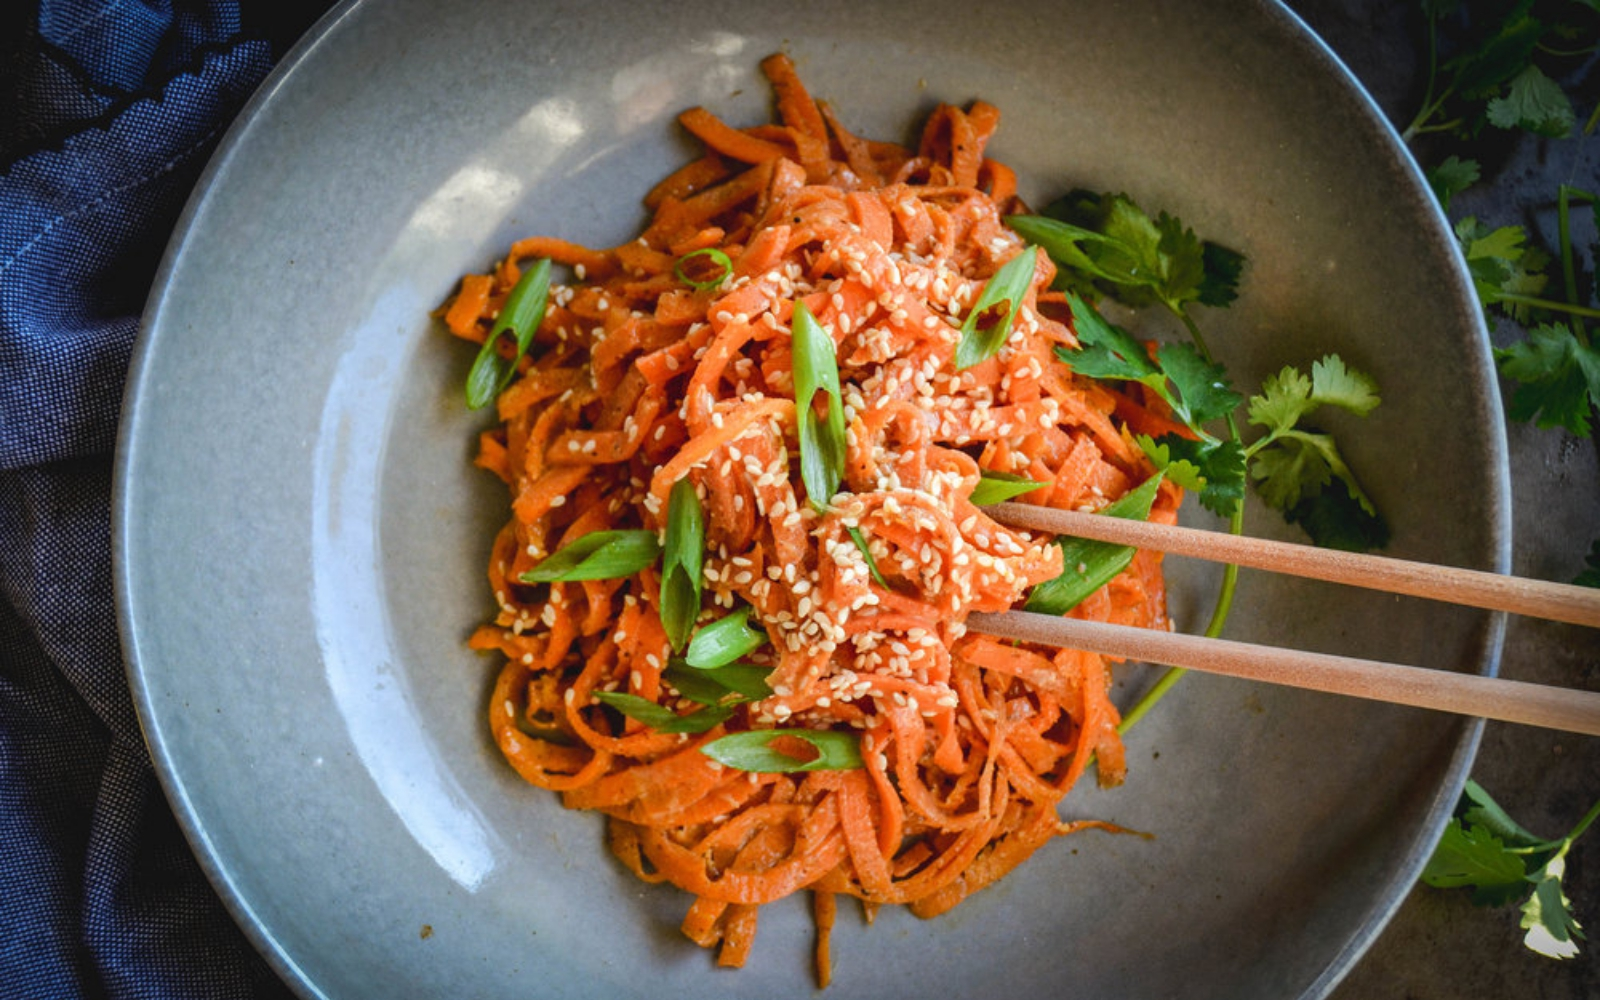 Vegan Gluten-Free Paleo Carrot Noodles With Almond Sesame Sauce